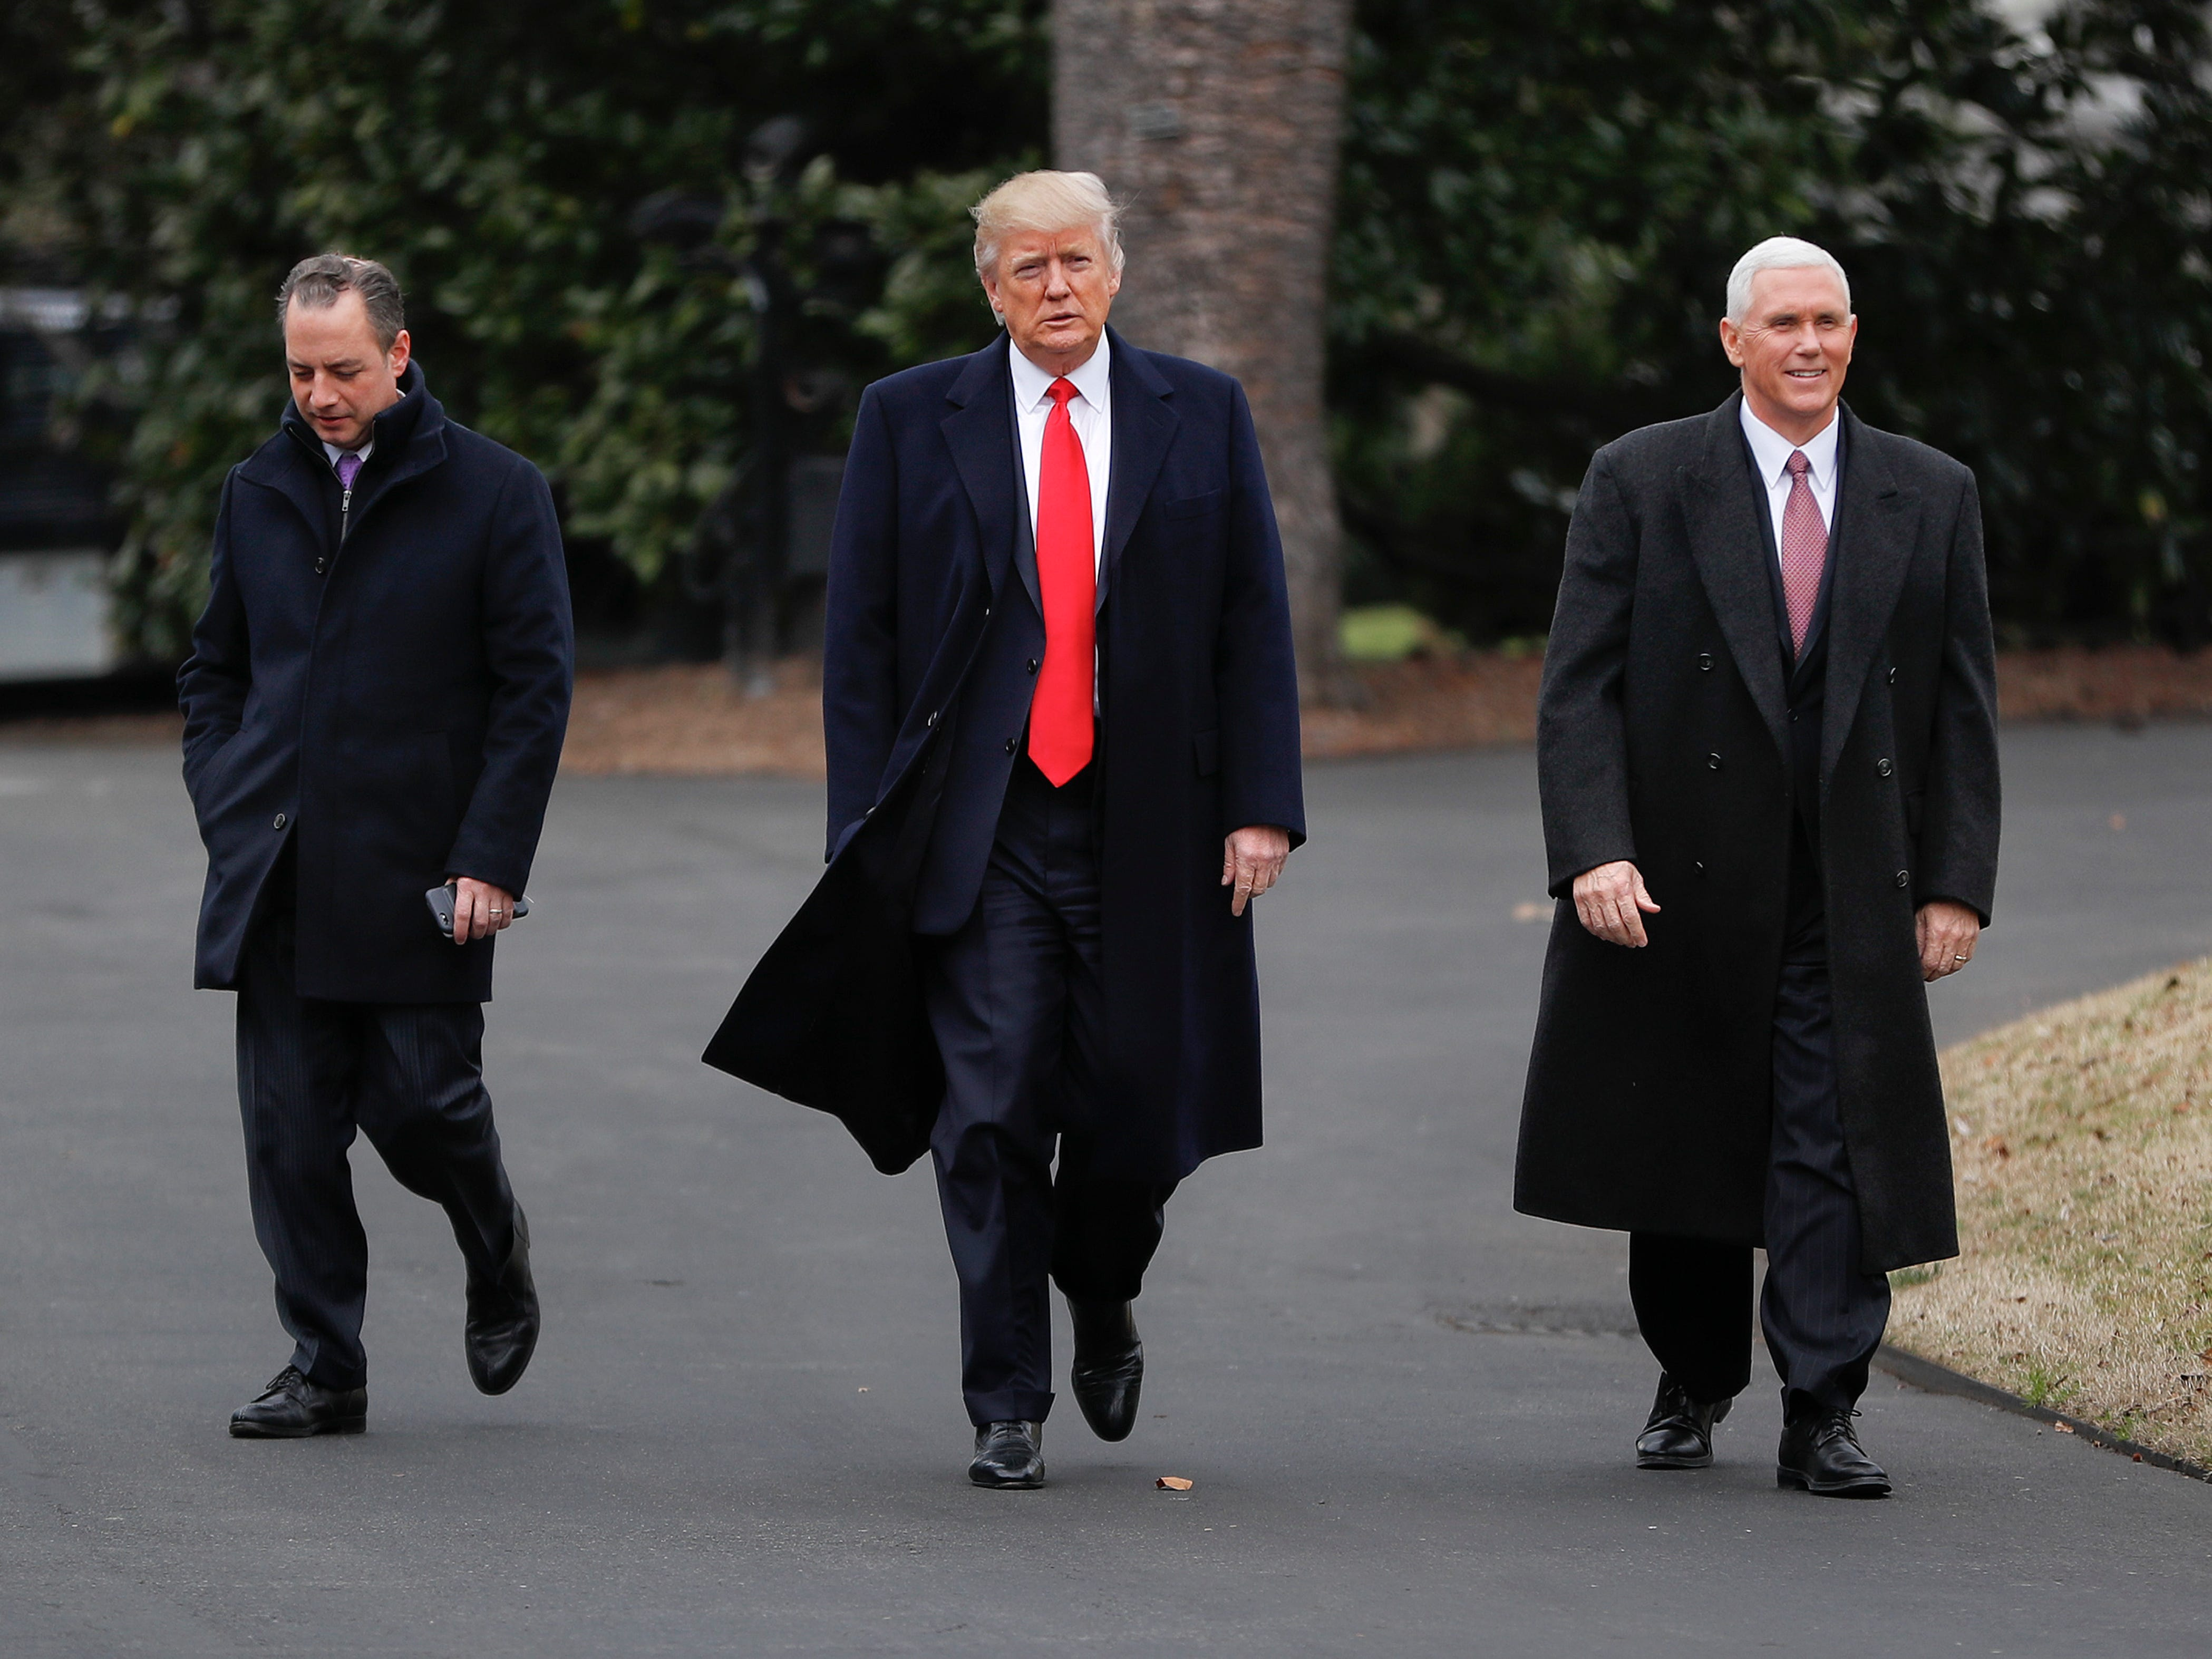 President Donald Trump (center), Vice President Mike Pence (right), and White House Chief of Staff Reince Priebus walk together on the South Lawn of the White House in Washington to greet Harley Davidson Harley Davidson executives and union representatives.